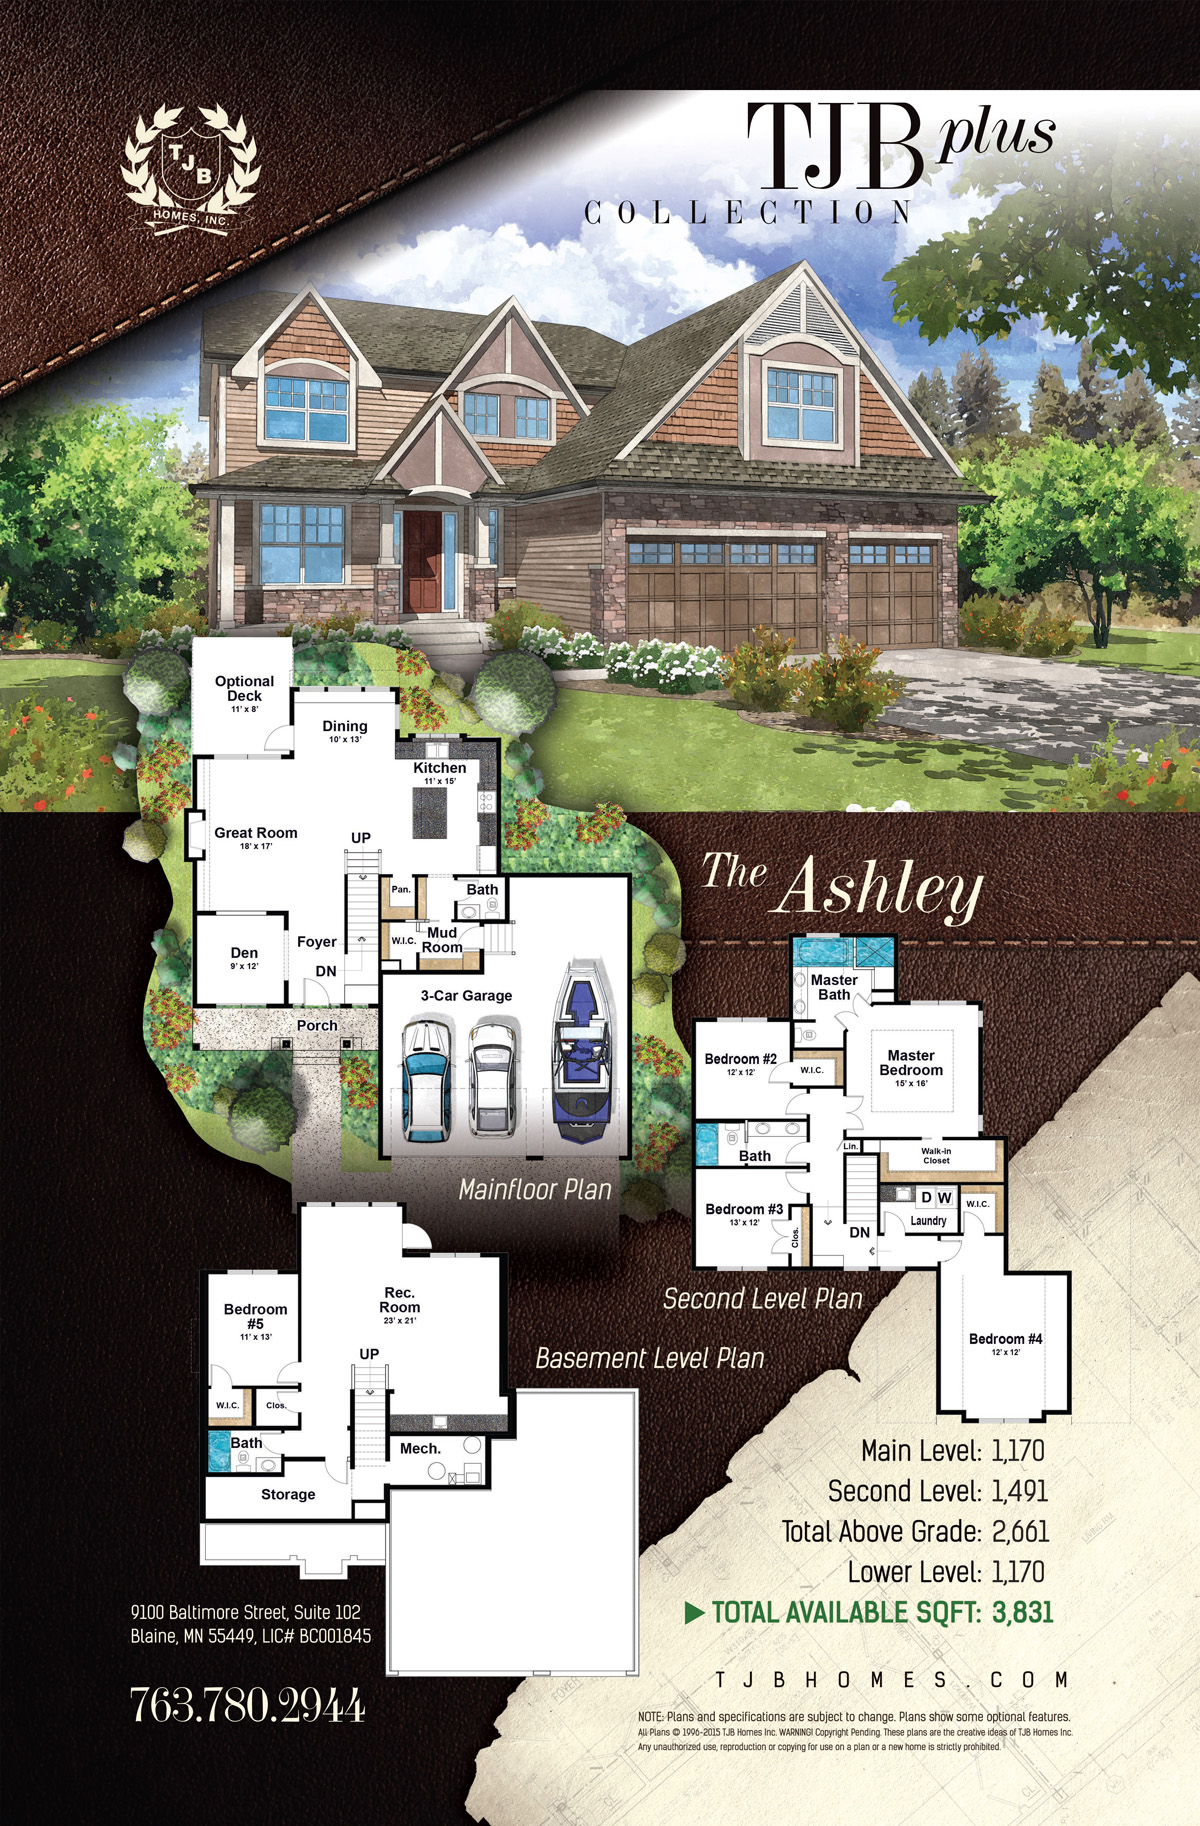 TJB Plus Collection Home Plans - The Ashley